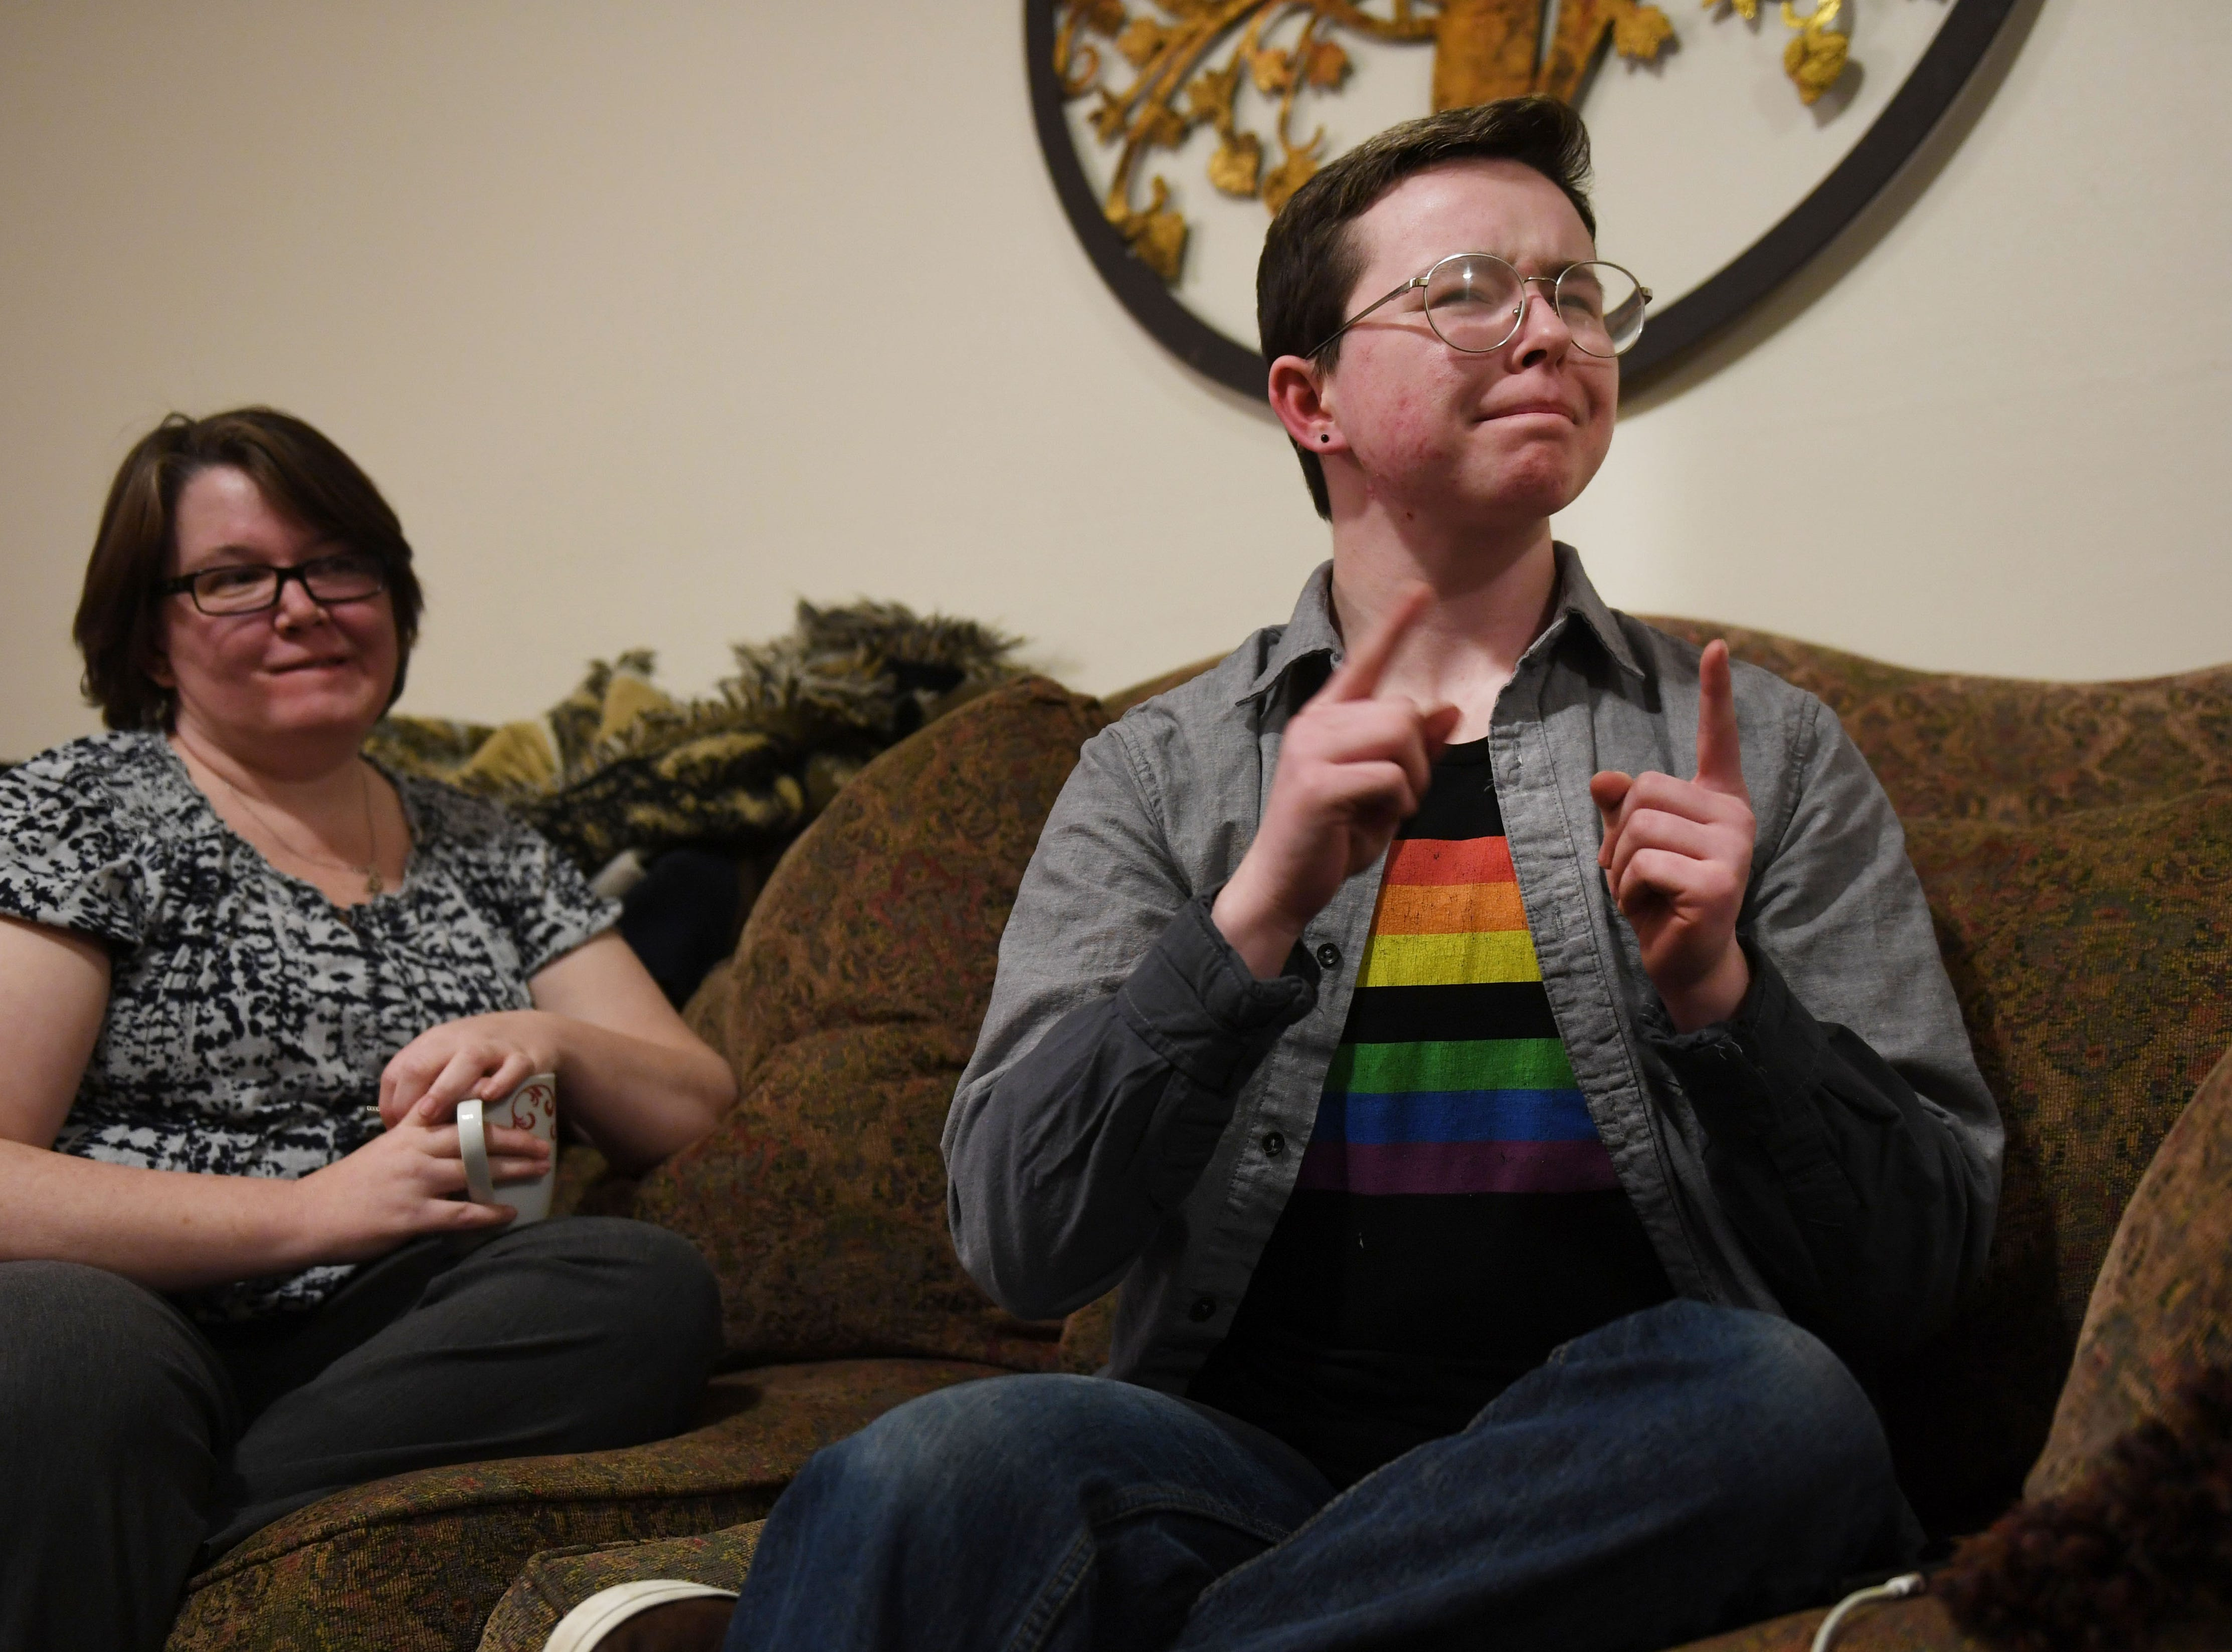 Oliver Dickman and his mom, Jessica Martin, talk on Monday, Feb. 25, in Yankton about the misconceptions people have about transgender people.